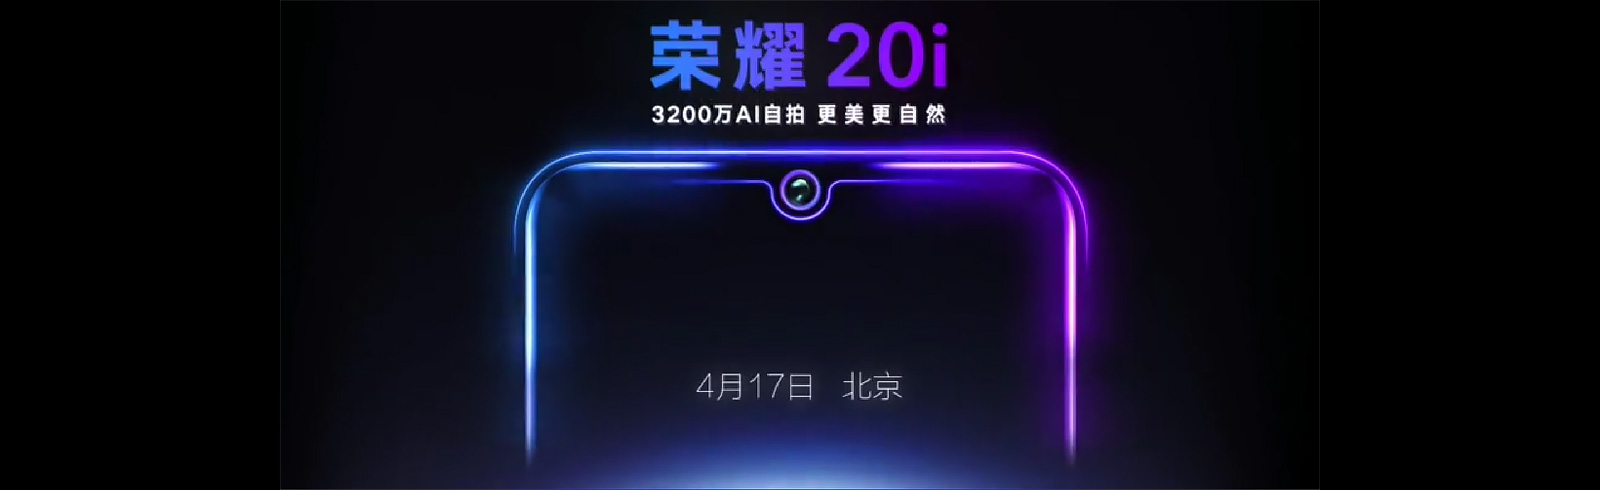 Huawei will announce the Honor 20i with a 32MP selfie camera on April 17th